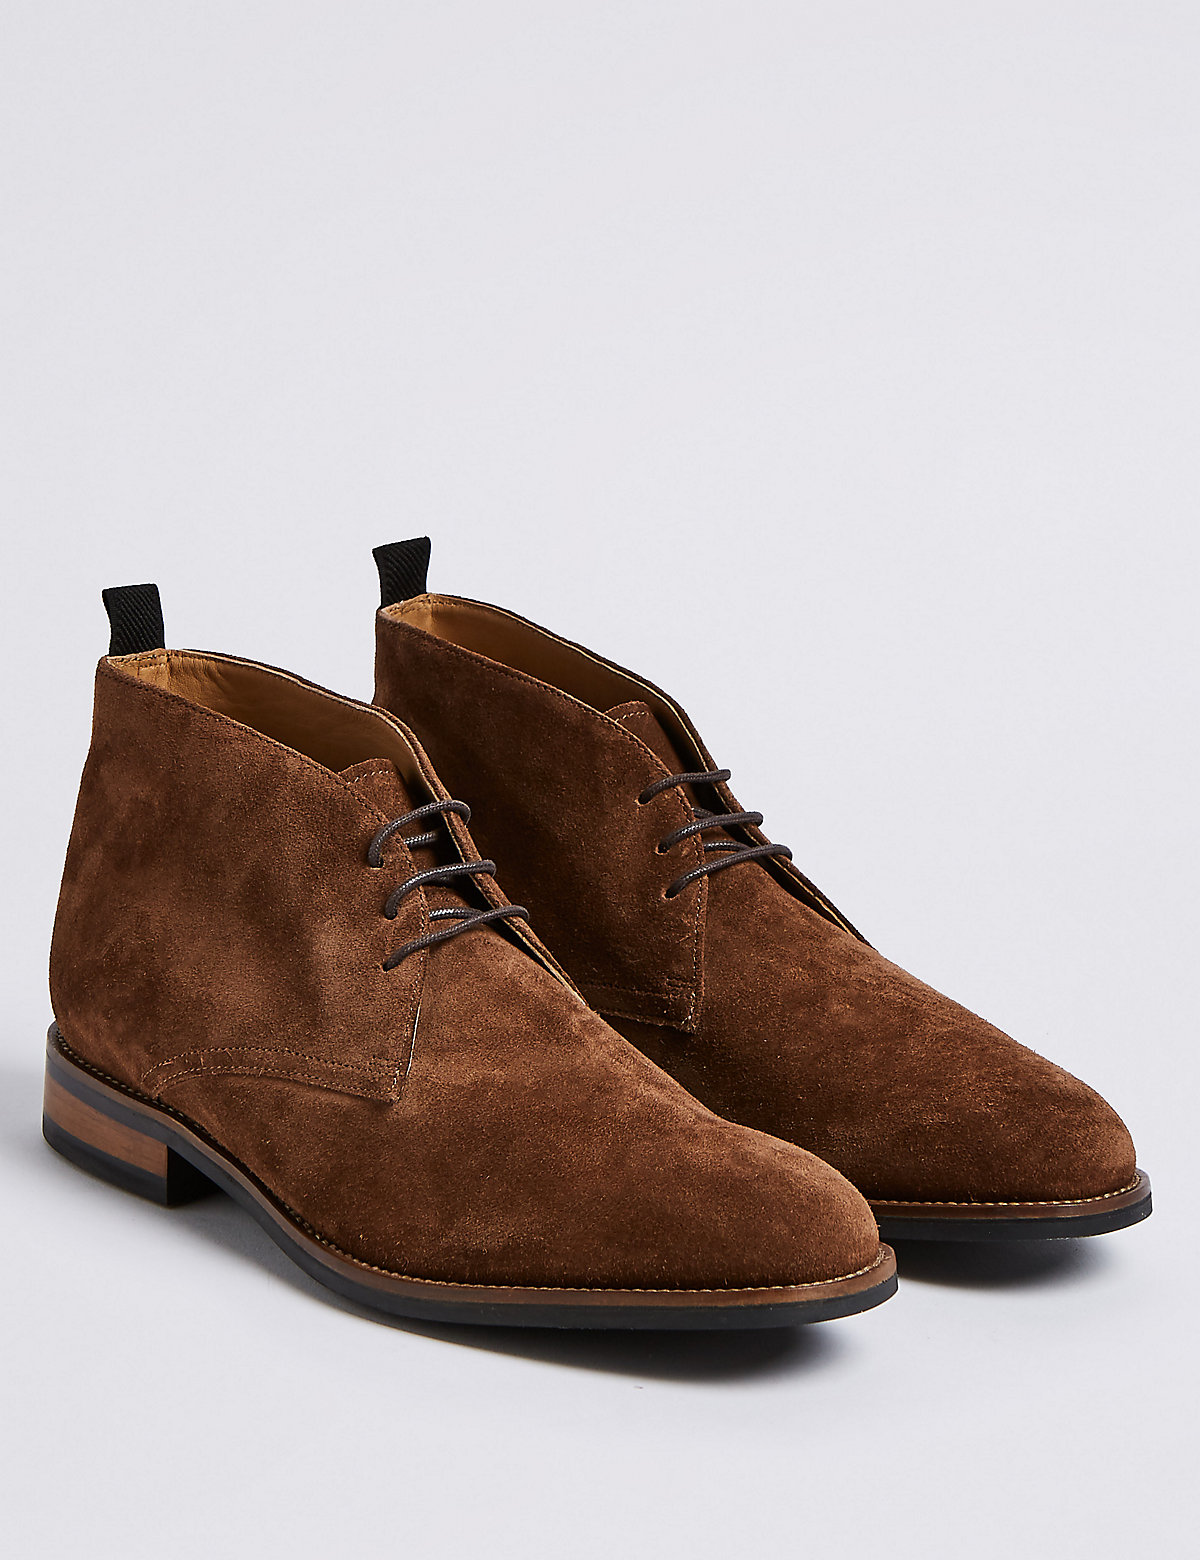 Marks & Spencer Brown Suede Lace-up Chukka Boots